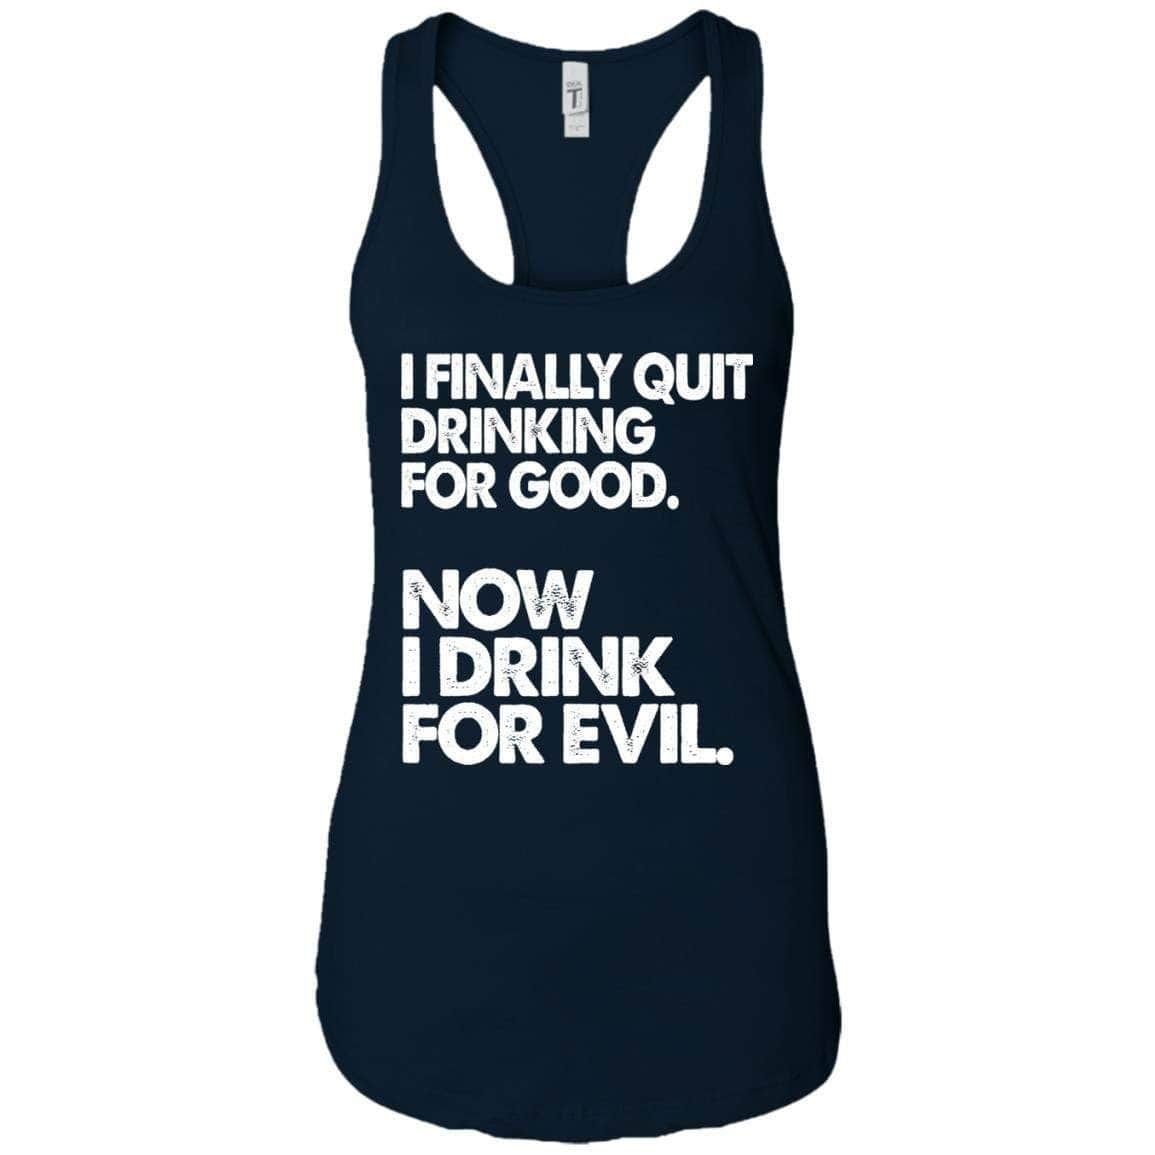 Drink For Evil Women's Racerback Tank